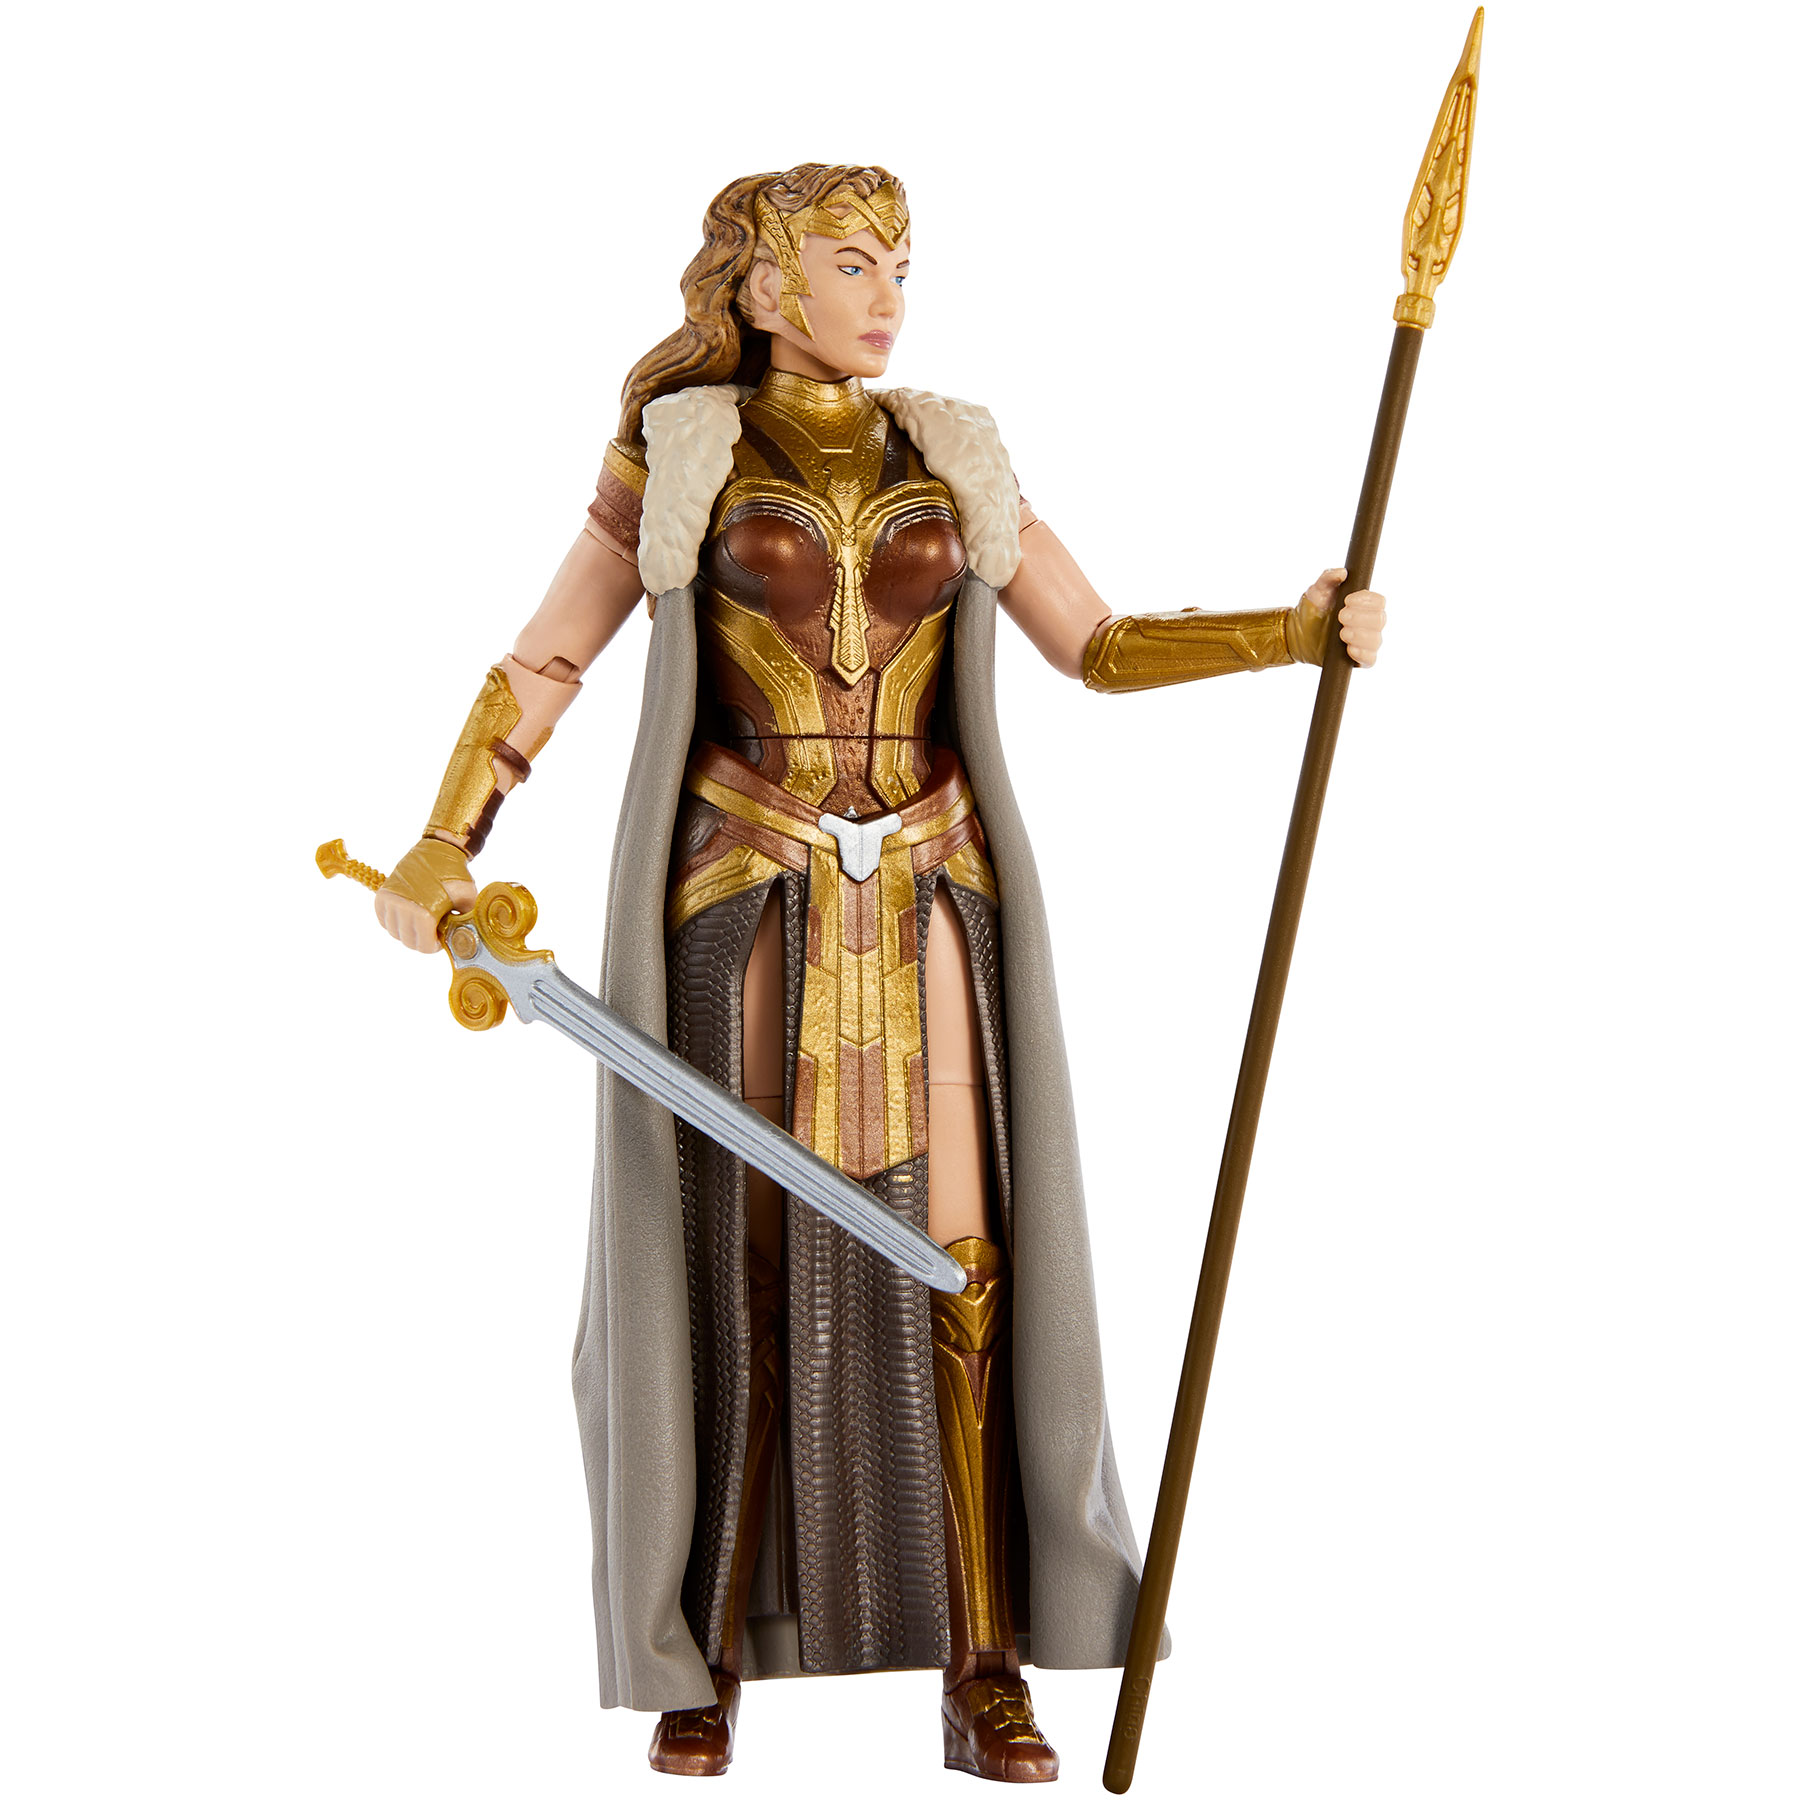 DC Comics Multiverse Wonder Woman 6 inch Action Figure - Queen Hippolyta PartNumber: 004W008772590024P